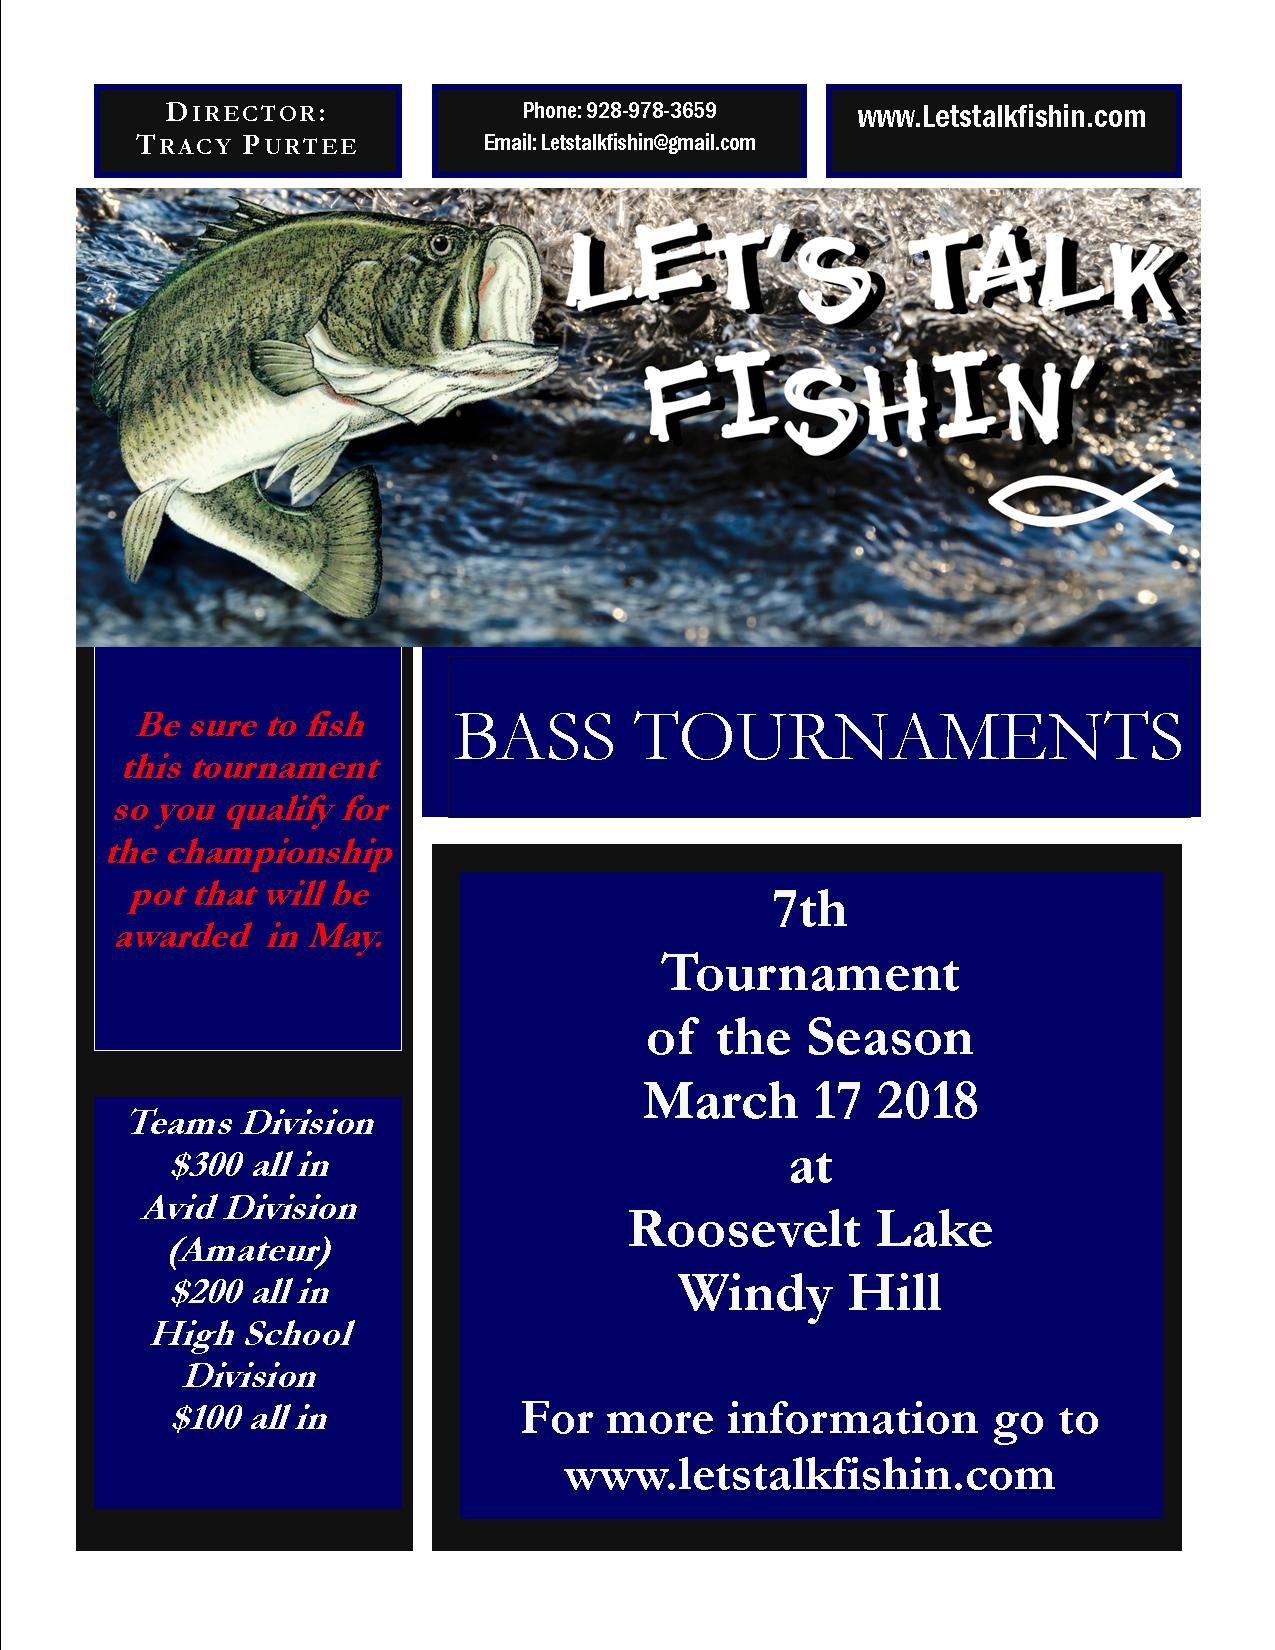 Click image for larger version  Name:7th Tournament.jpg Views:981 Size:283.6 KB ID:96826